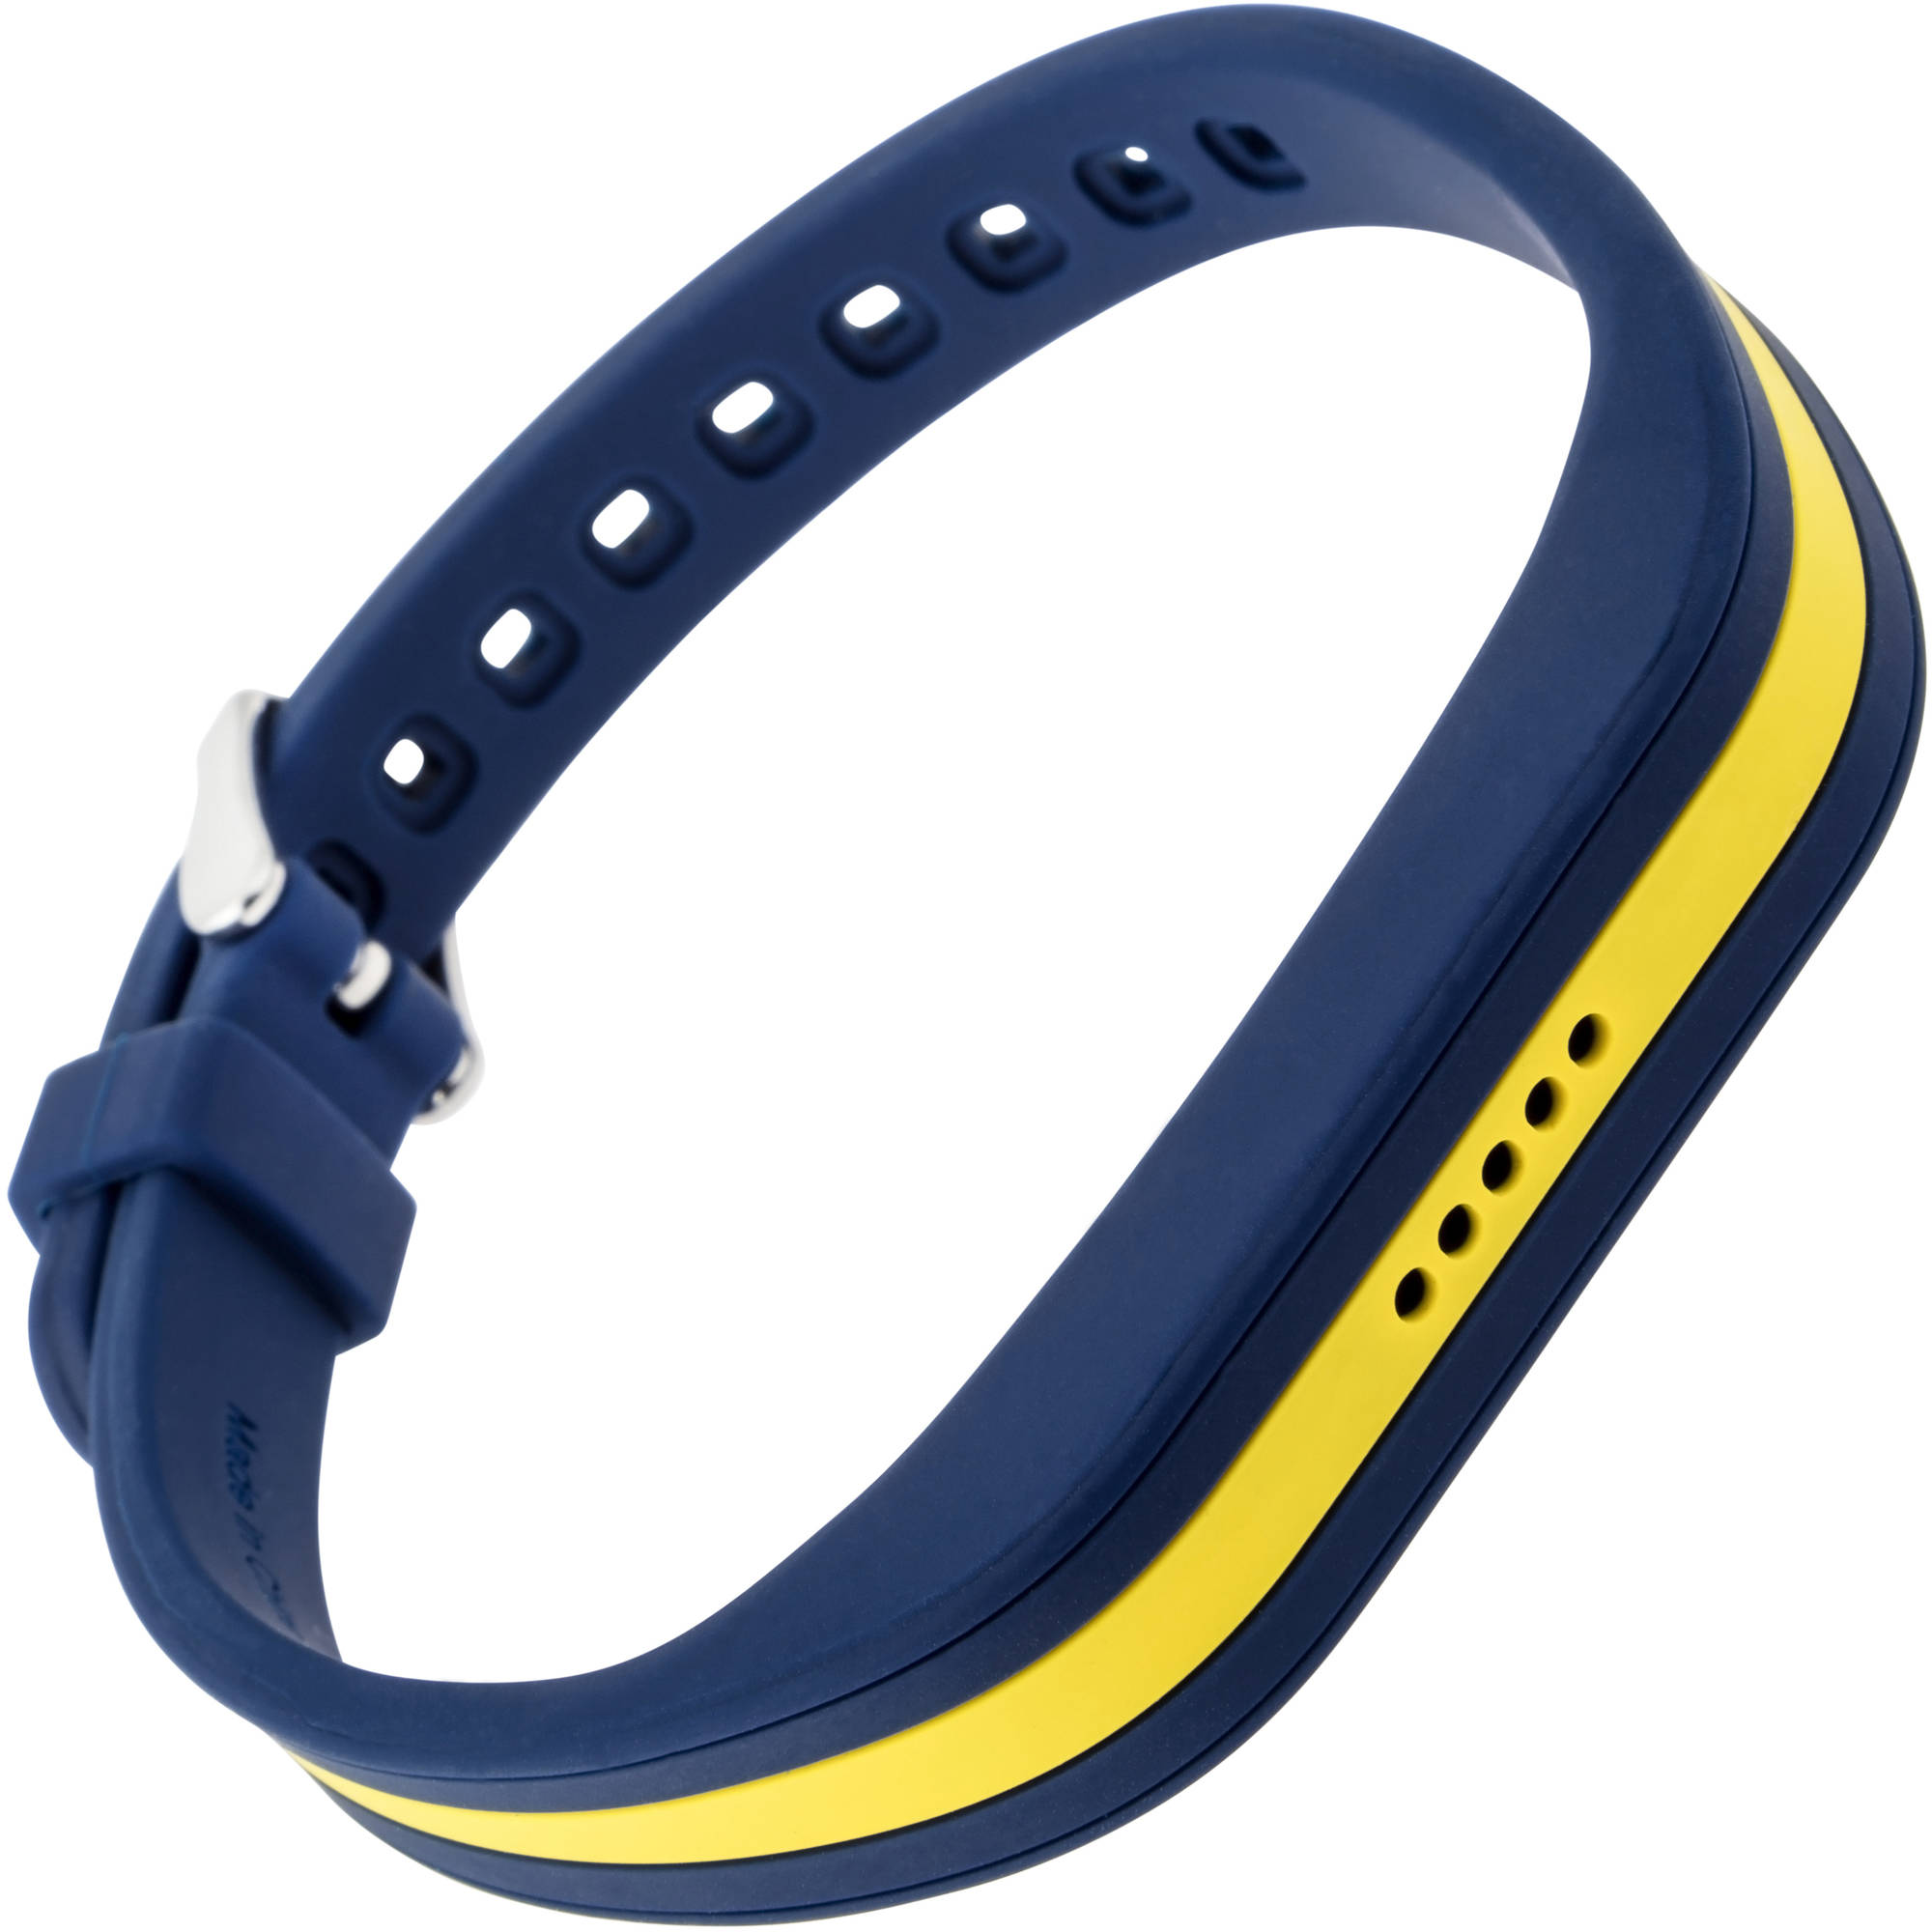 Blackweb by Walmart replacement band with steel buckle for fitbit flex 2, blue yellow by Generic